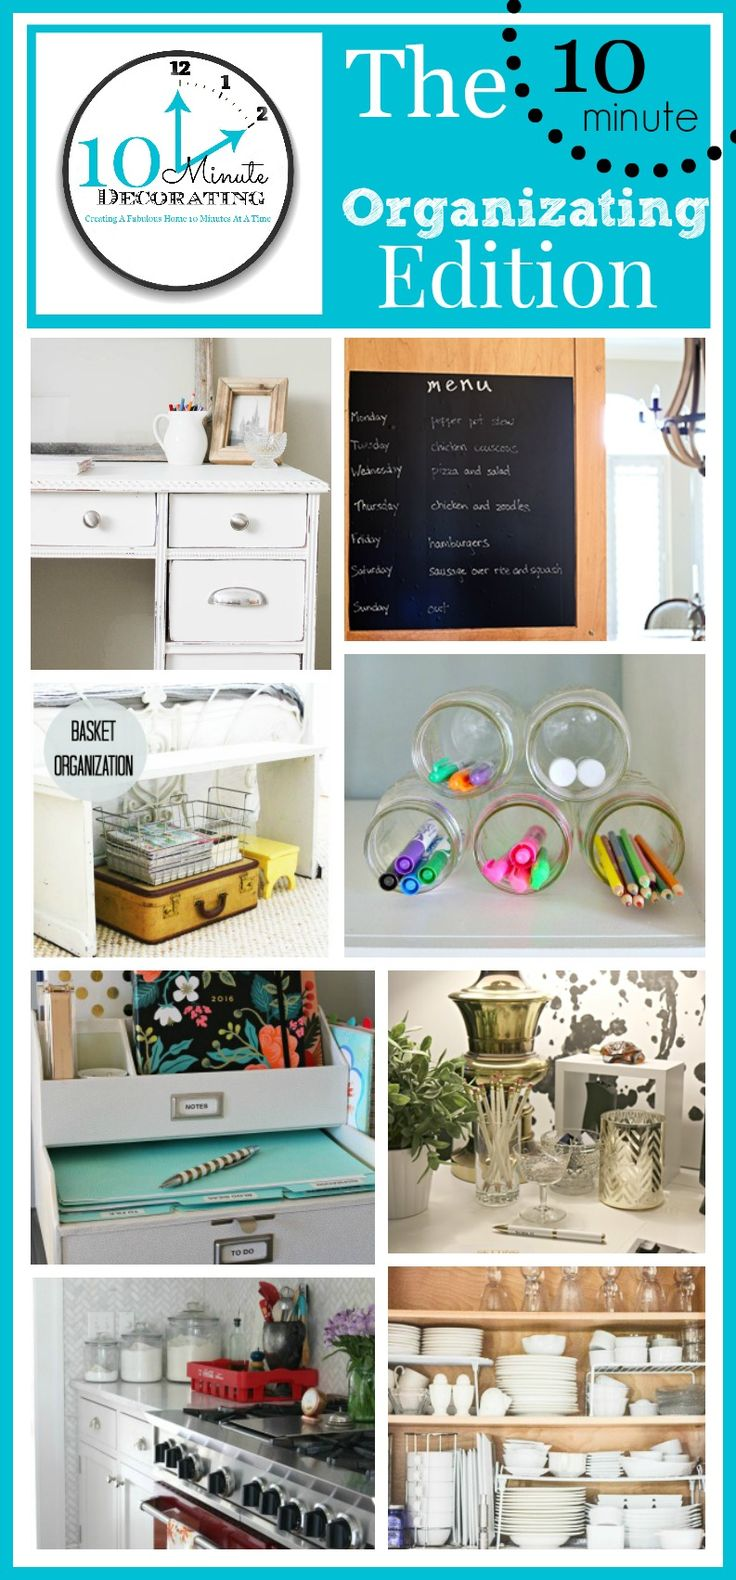 116 best images about Home Office Organization Ideas on Pinterest